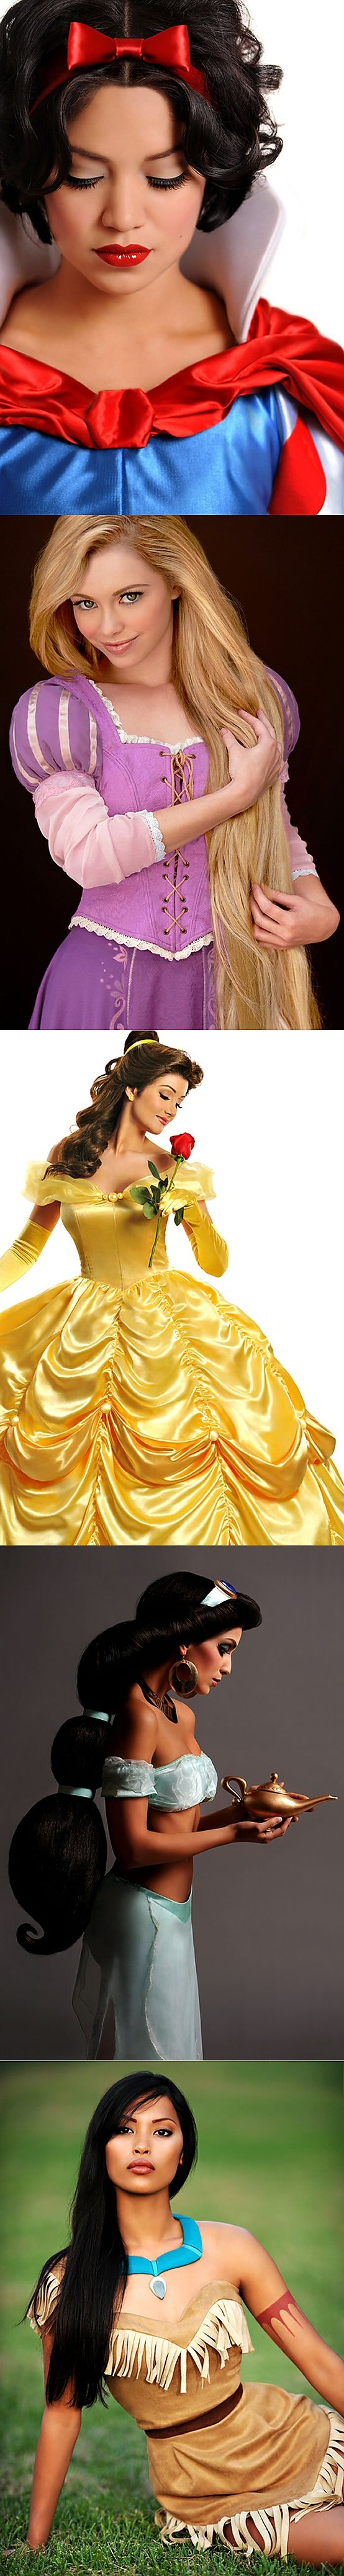 The Real Disney Princesses = Awesome Cosplay